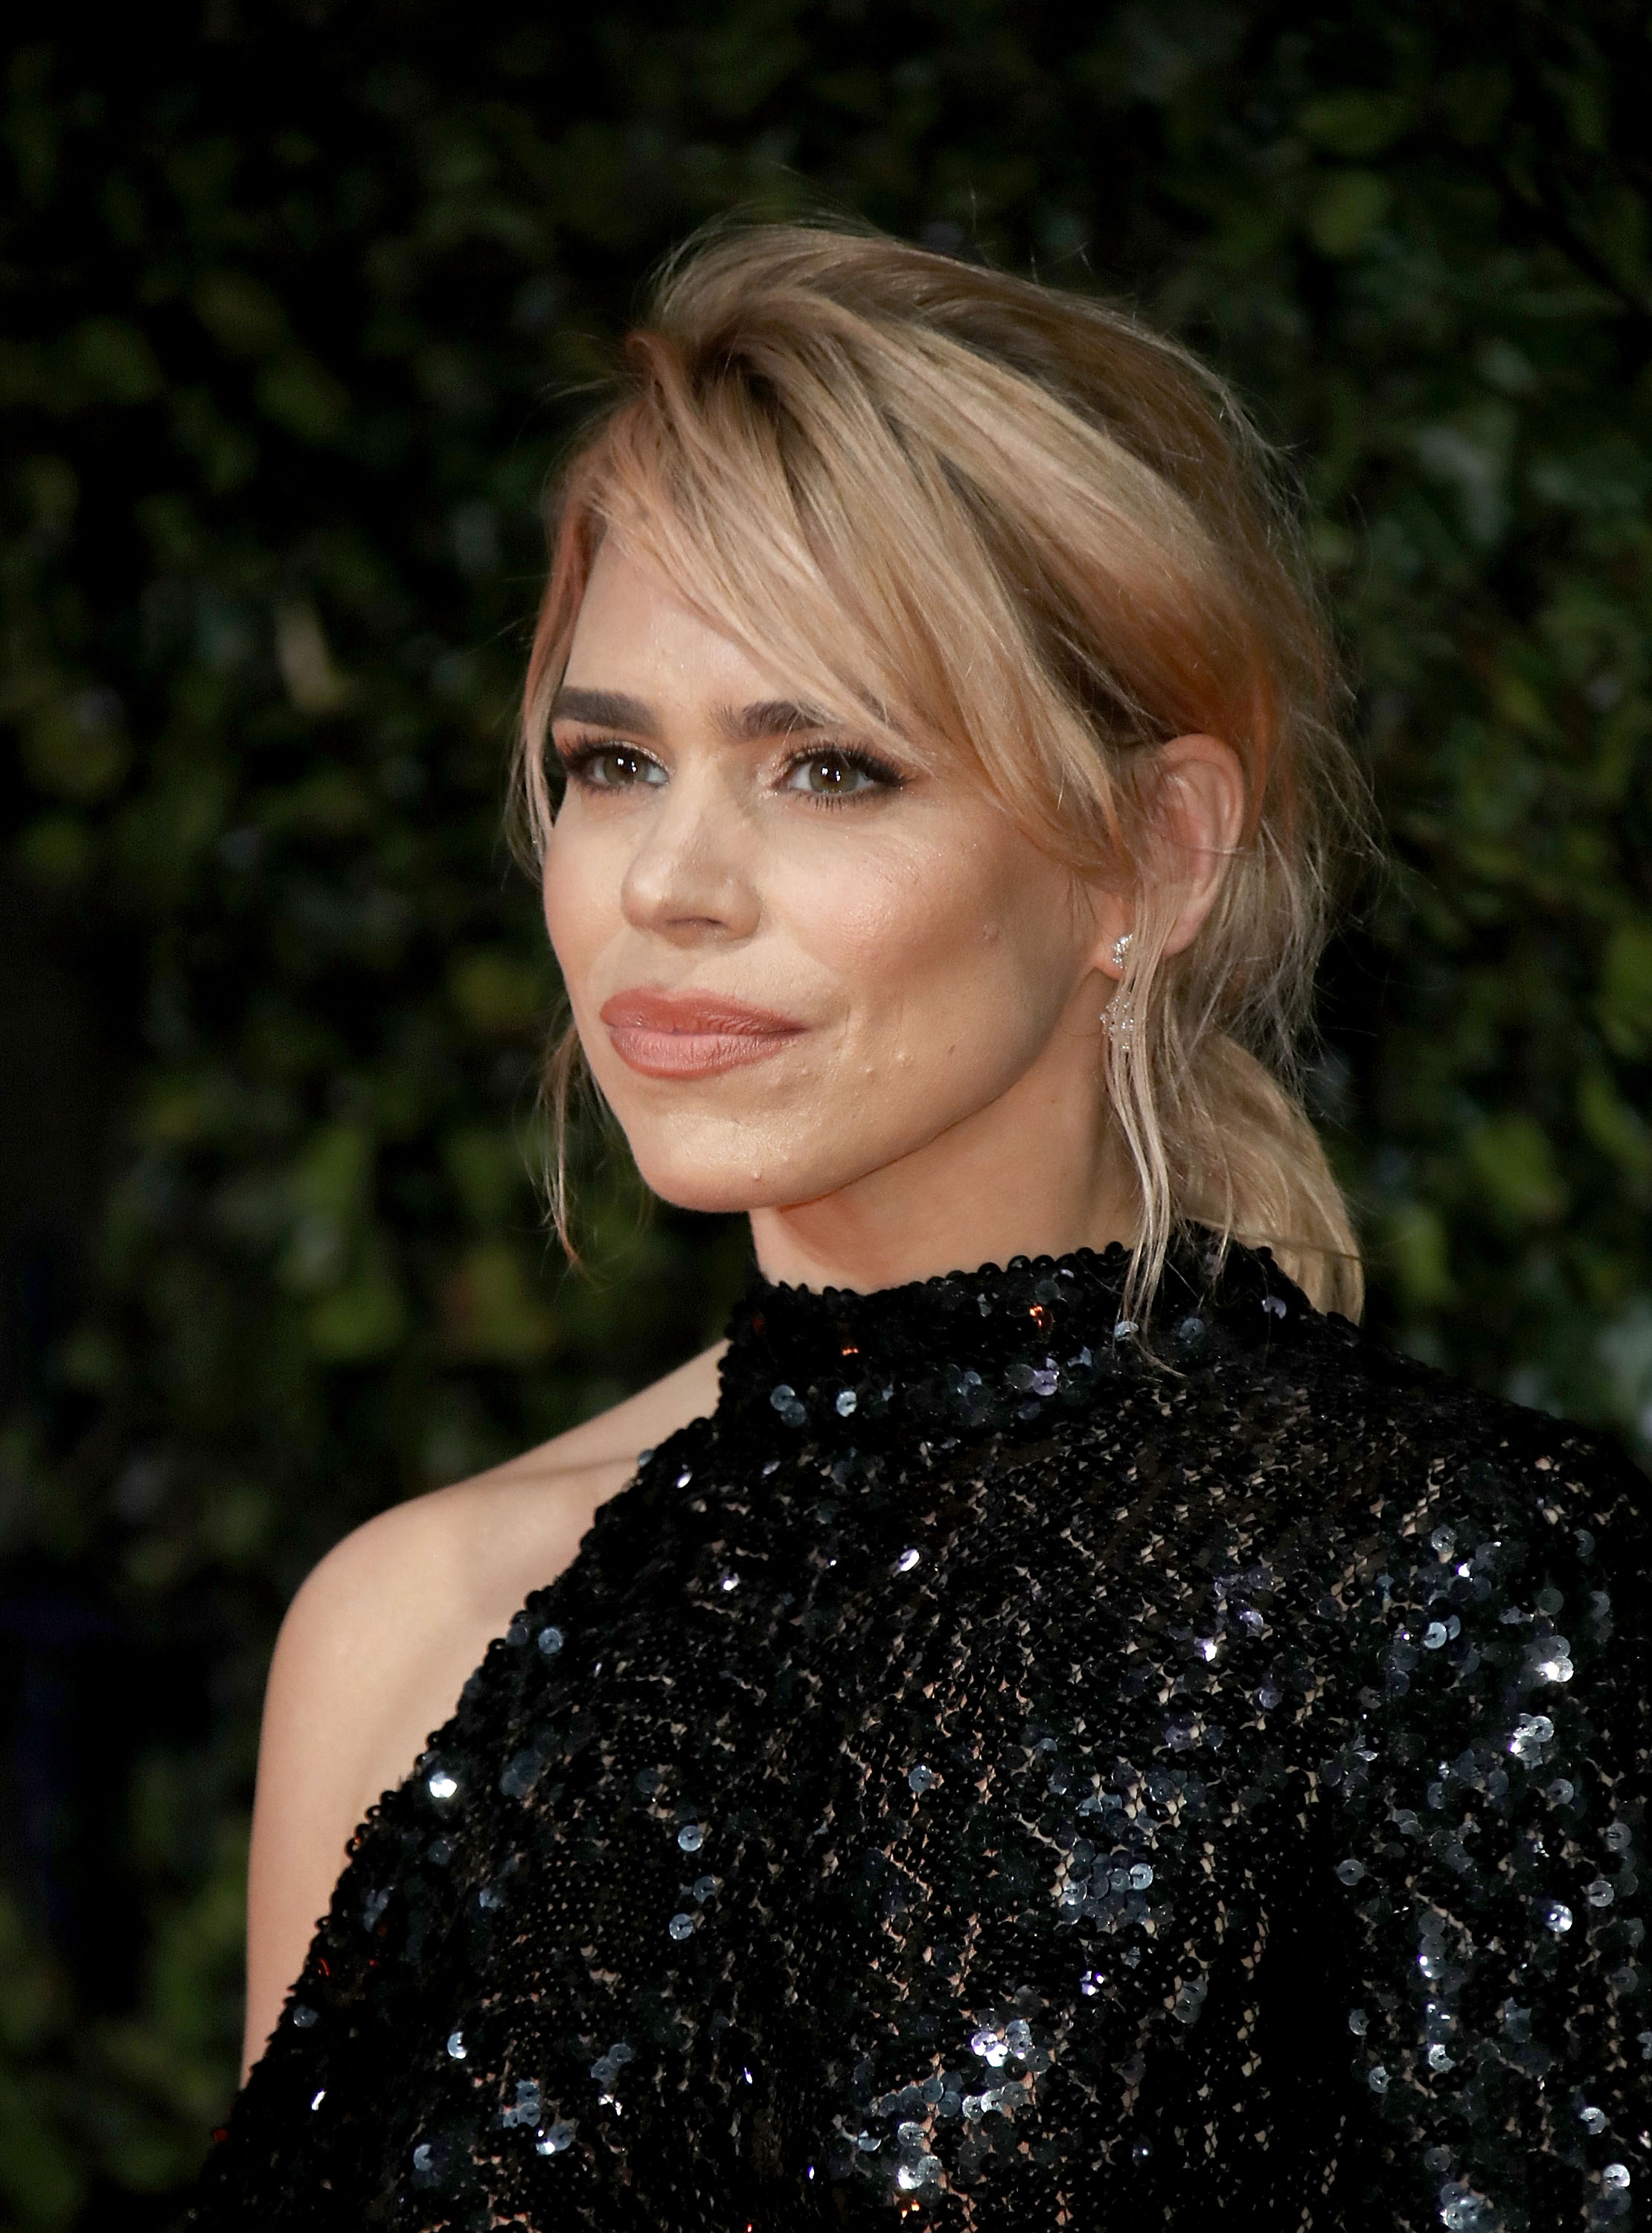 LONDON, ENGLAND - DECEMBER 03:  Billie Piper attends the London Evening Standard Theatre Awards at Theatre Royal on December 3, 2017 in London, England.  (Photo by Mike Marsland/Mike Marsland/WireImage)  Getty, TL